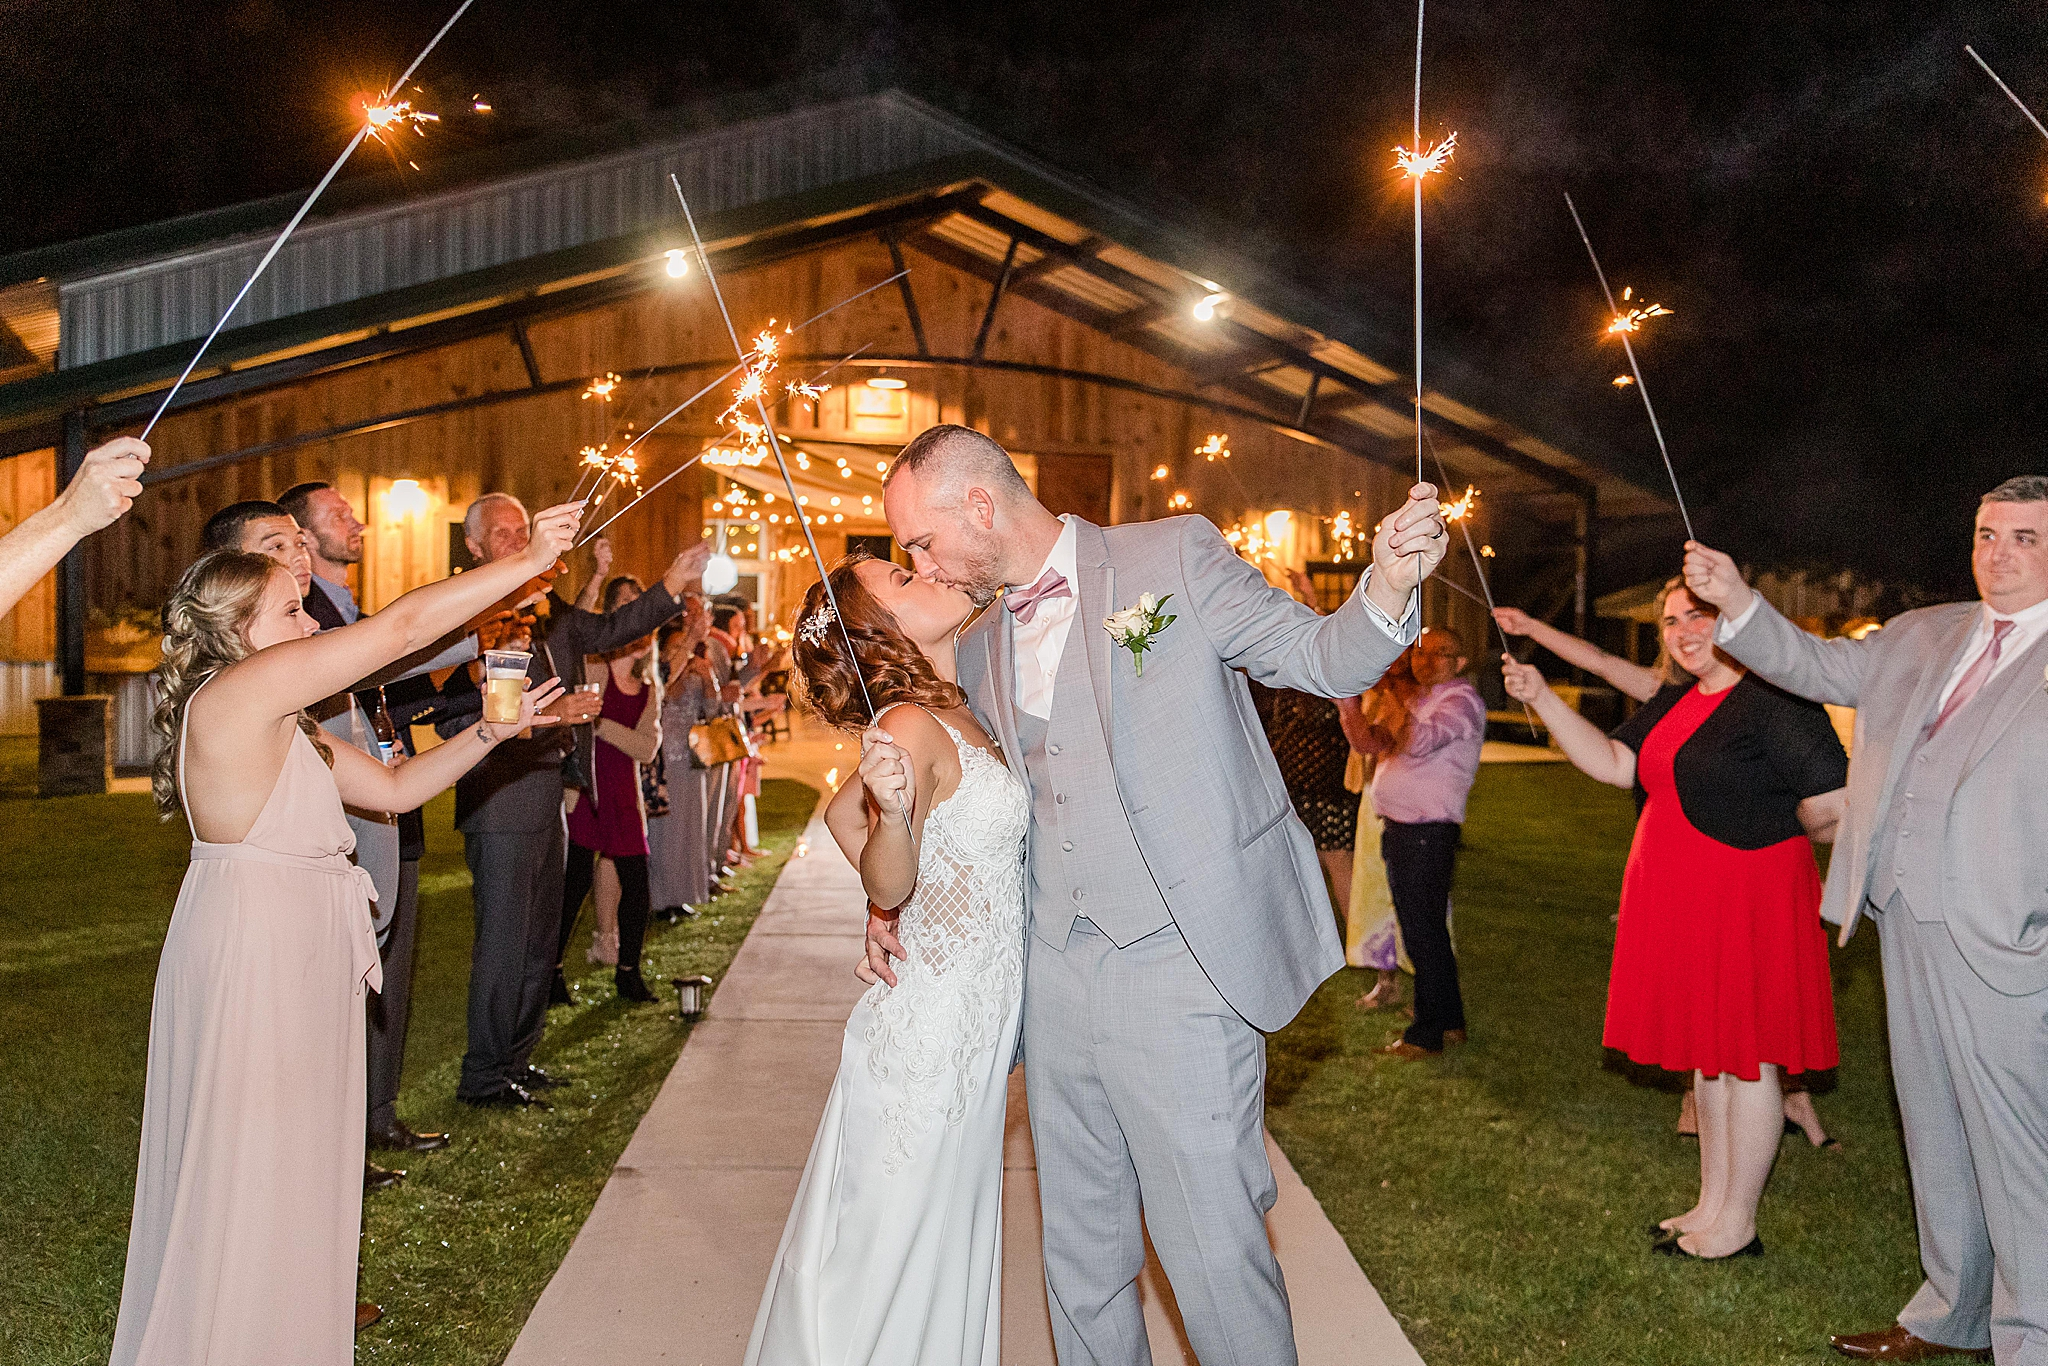 sparkler exit to end Orchard at Hayes Farm wedding